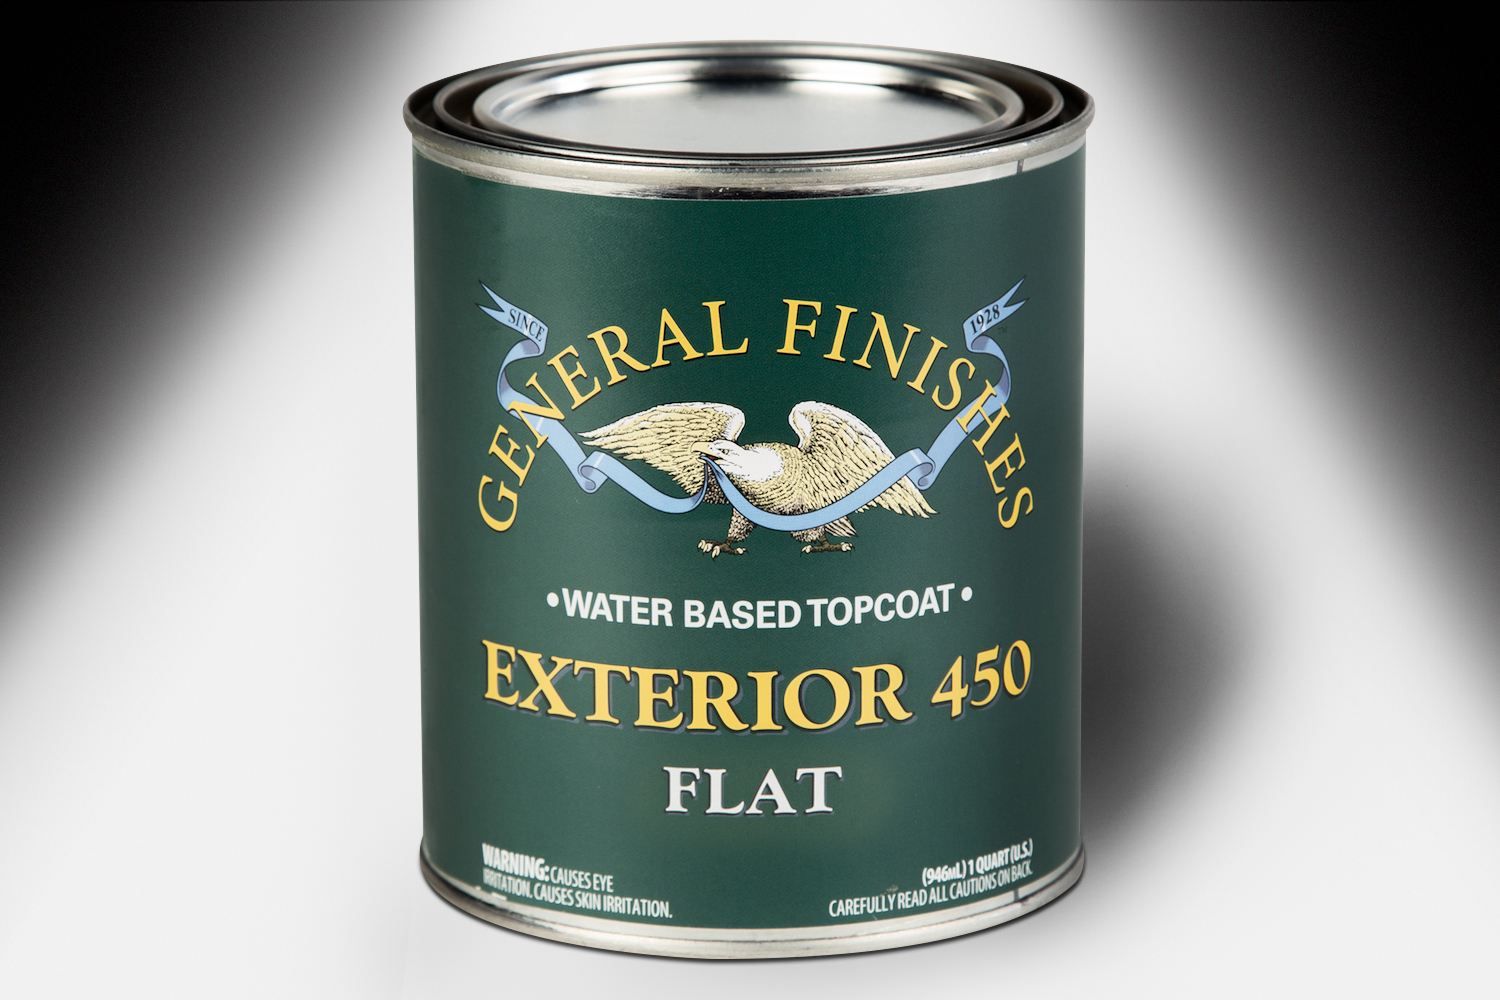 General Finishes Exterior 450 Topcoat Flat Water Based